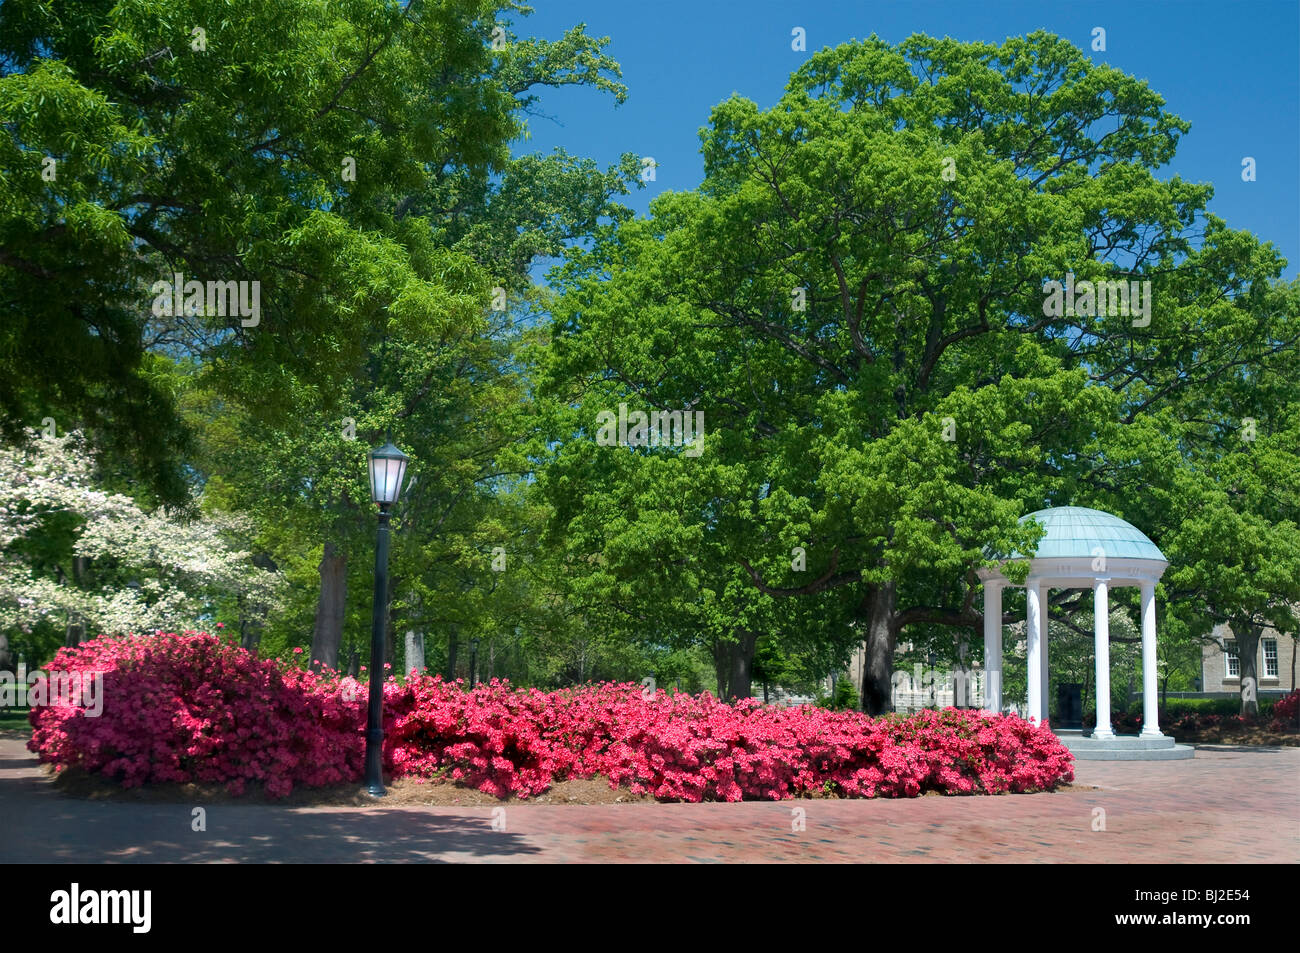 The Old Well, University of North Carolina, Chapel Hill - Stock Image